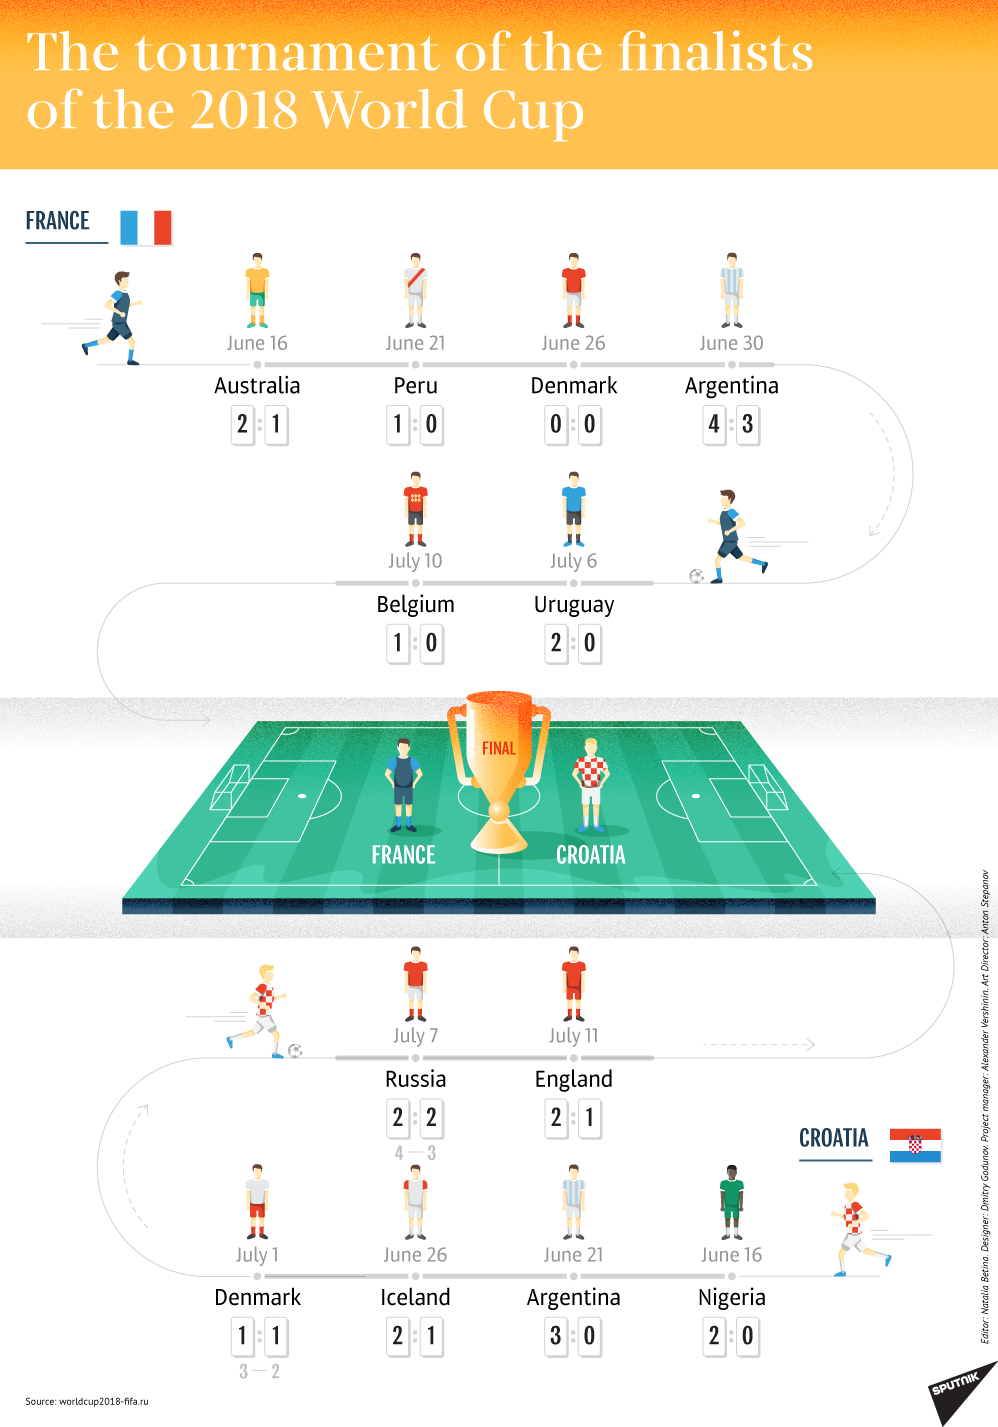 2018 FIFA World Cup Finalists path